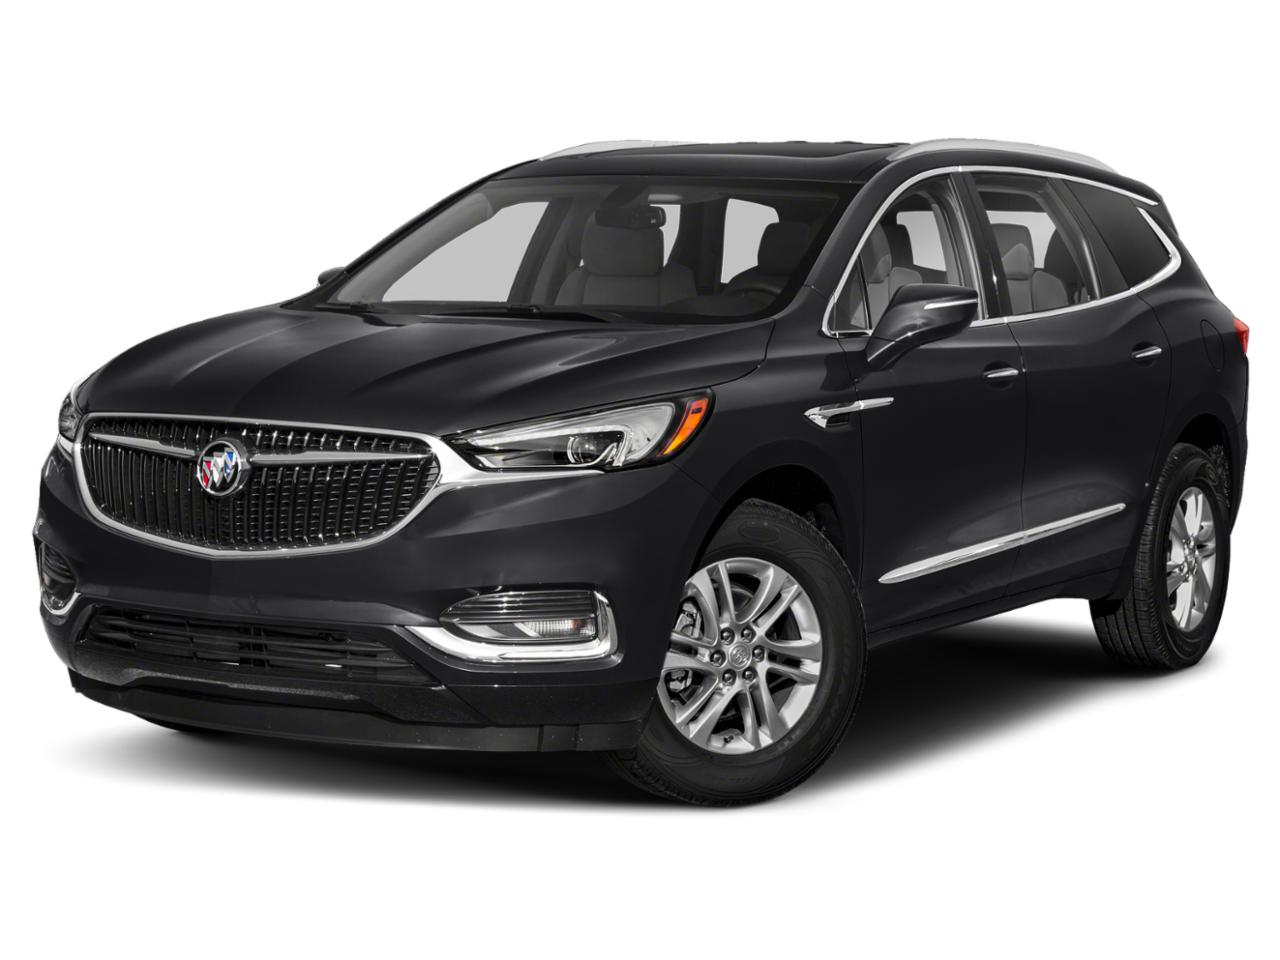 2020 Buick Enclave Avenir Awd In Norman, Ok | Stk# |Ferguson 2021 Buick Enclave Avenir Awd Review, Accessories, Build